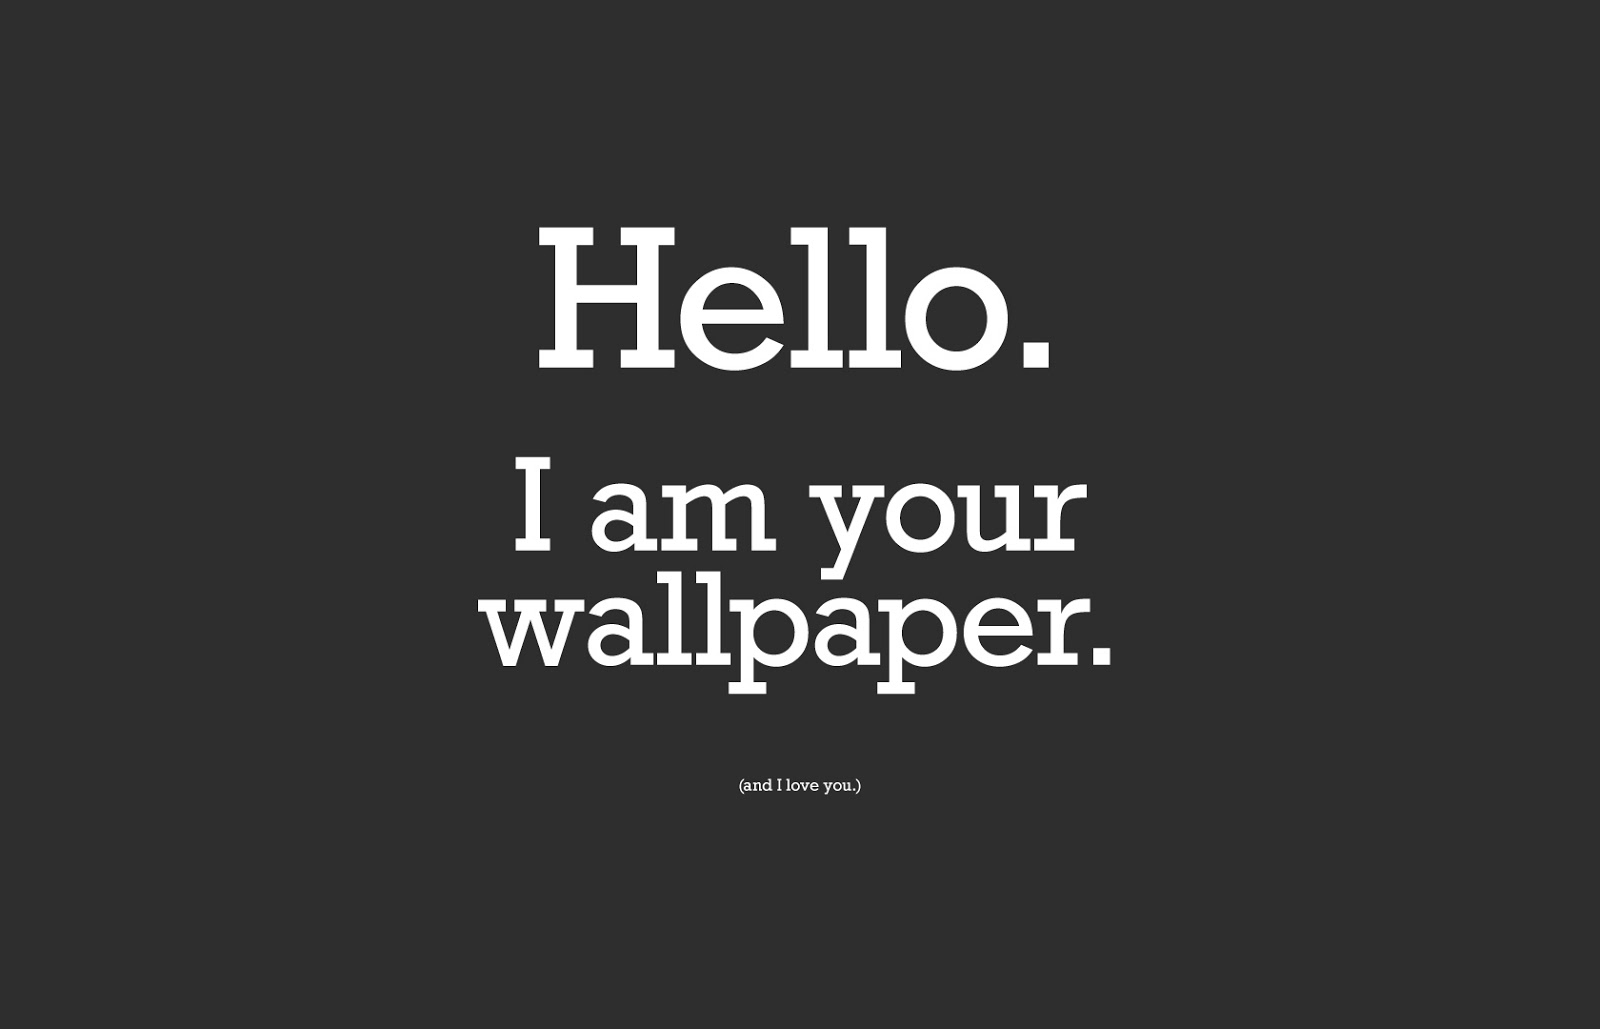 wallpapers beautiful funny desktop backgrounds funny cool funny 1600x1029